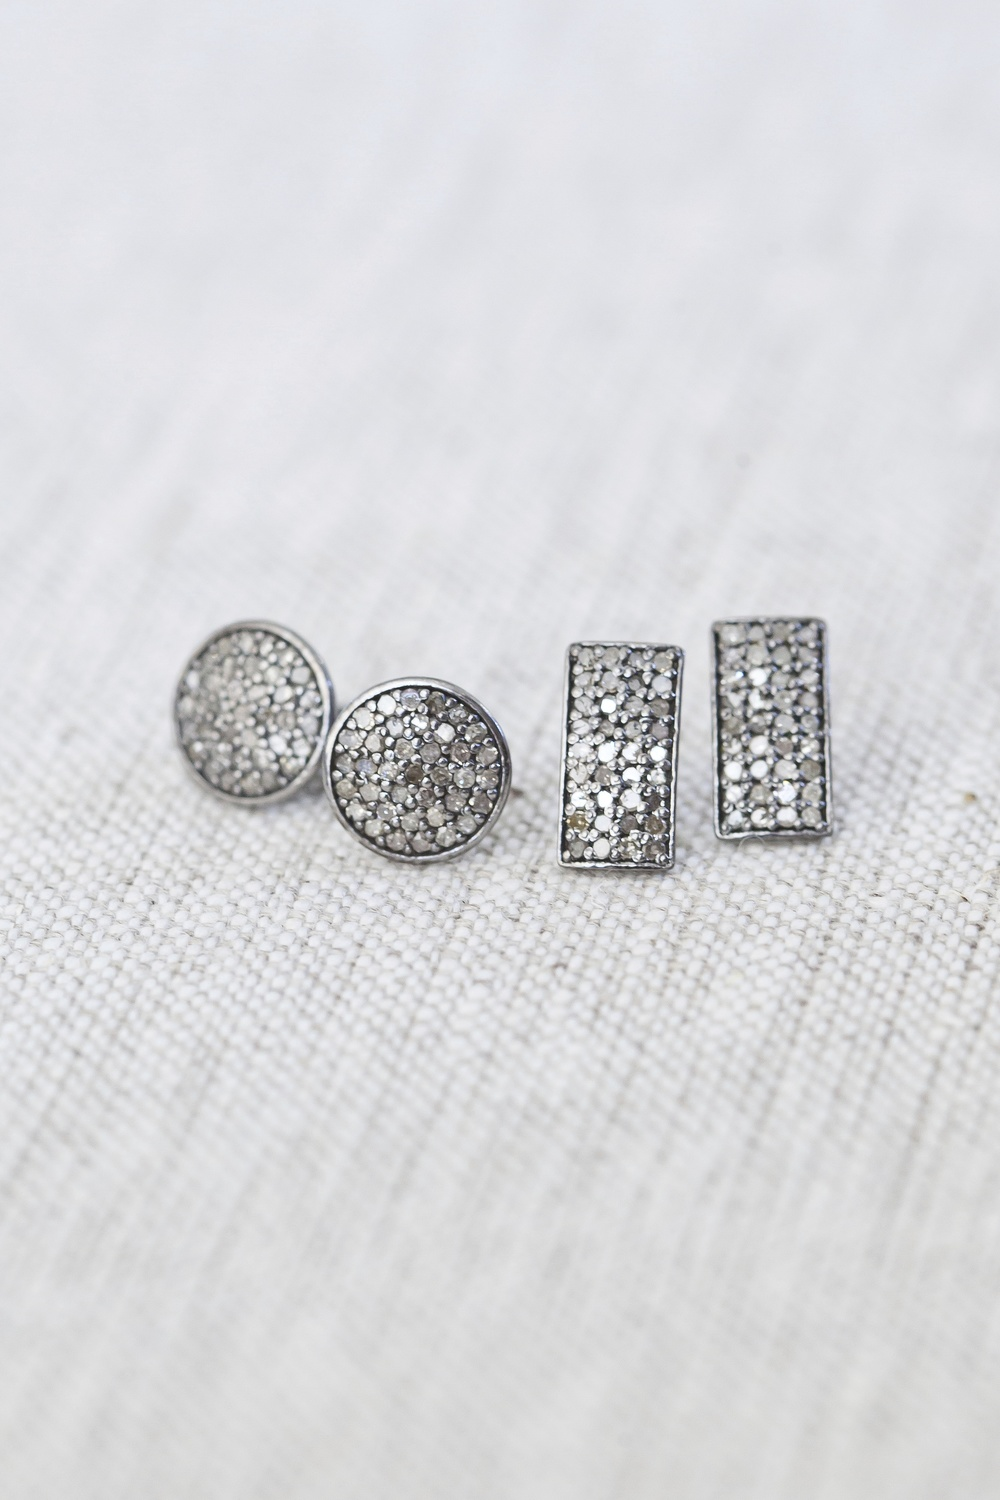 2 pair studs on tray (1).jpg